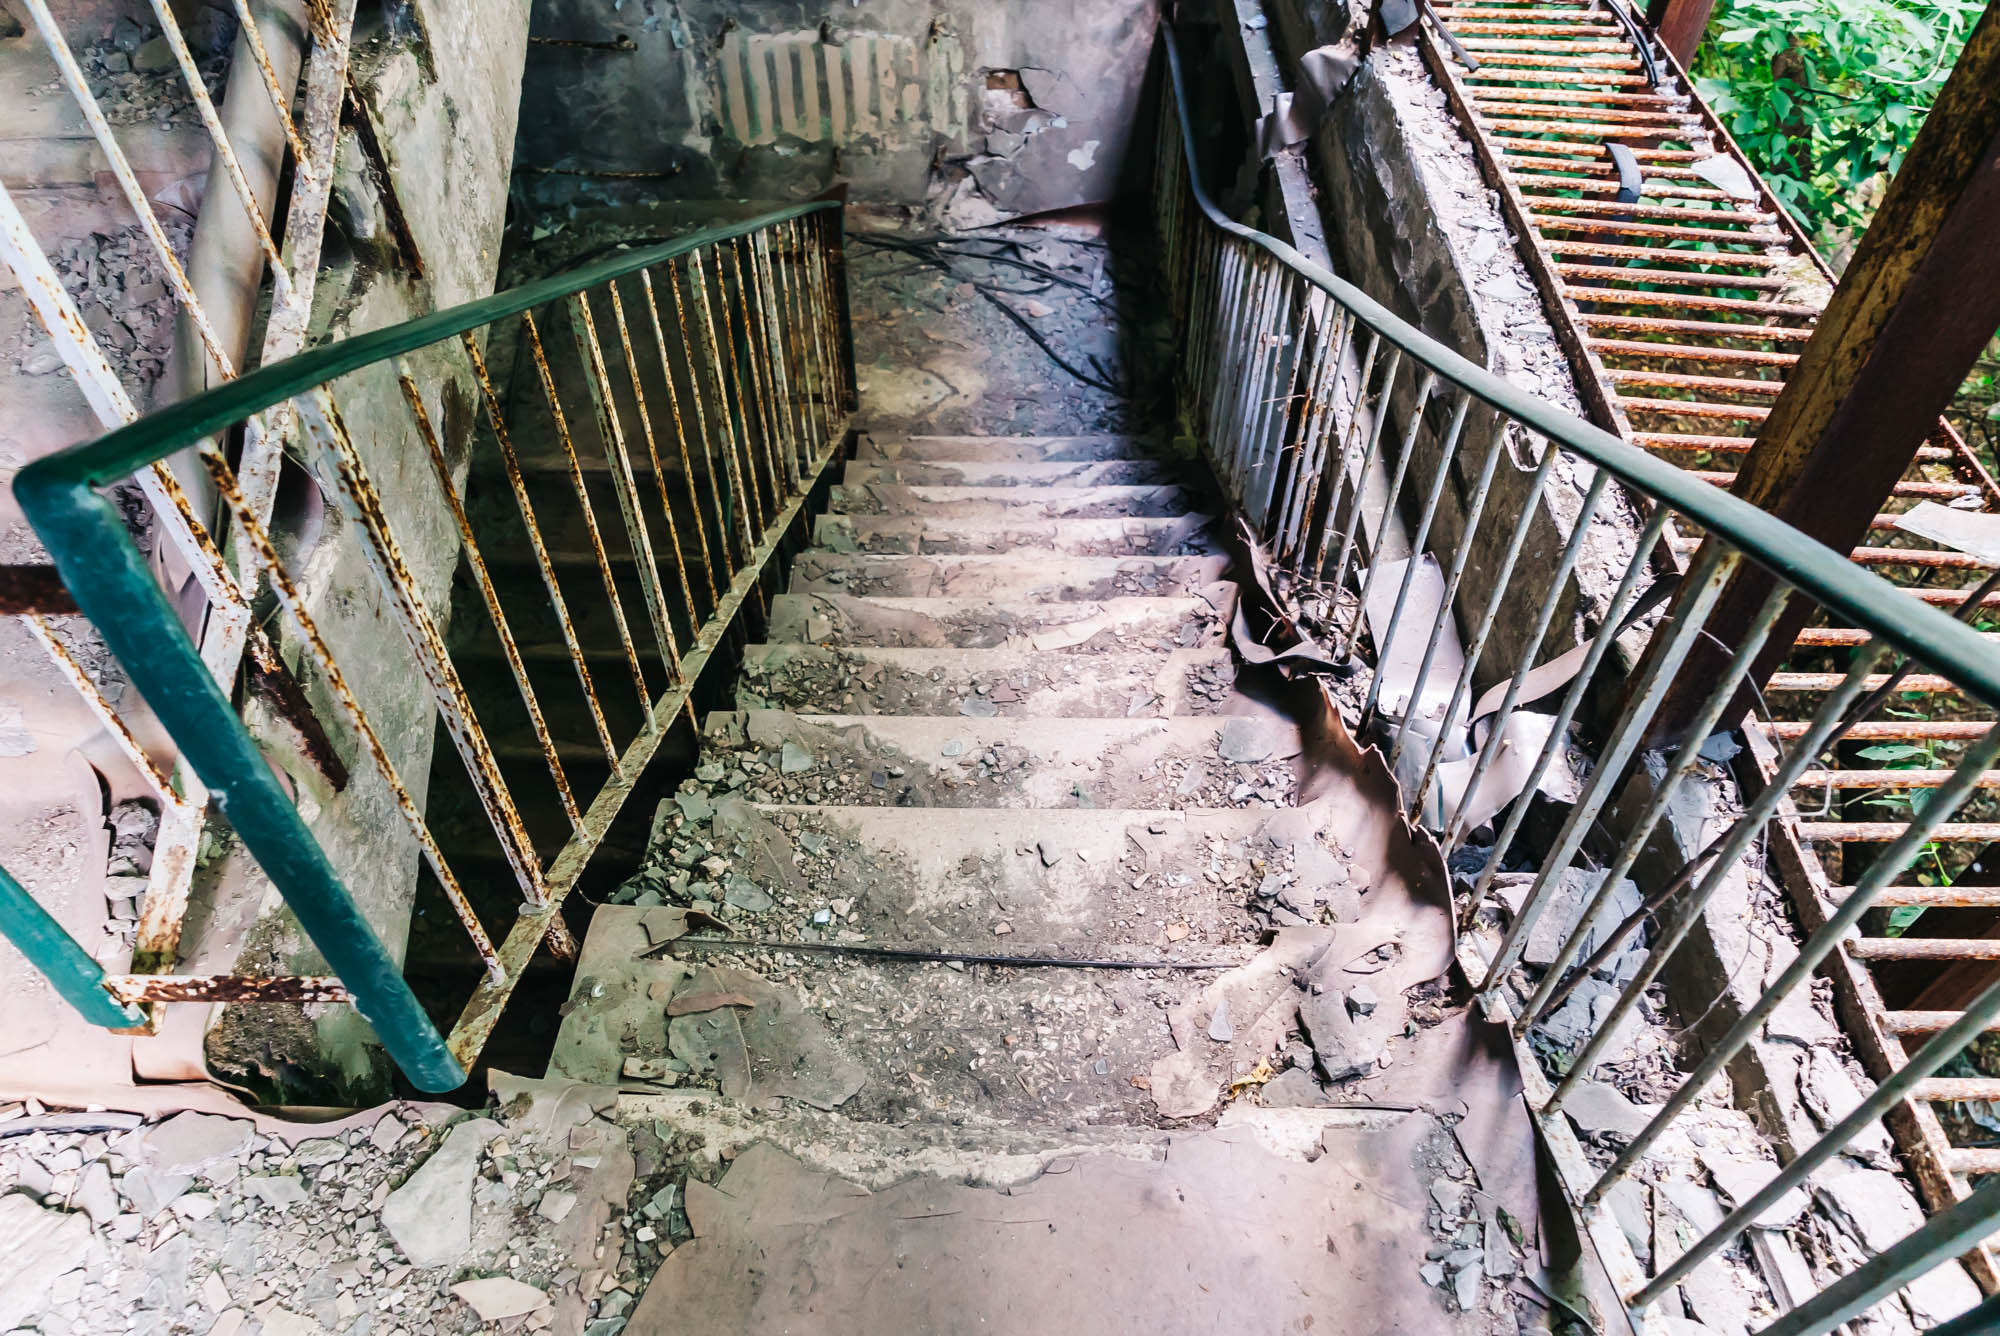 Going up and down these old stairs was a little frightening